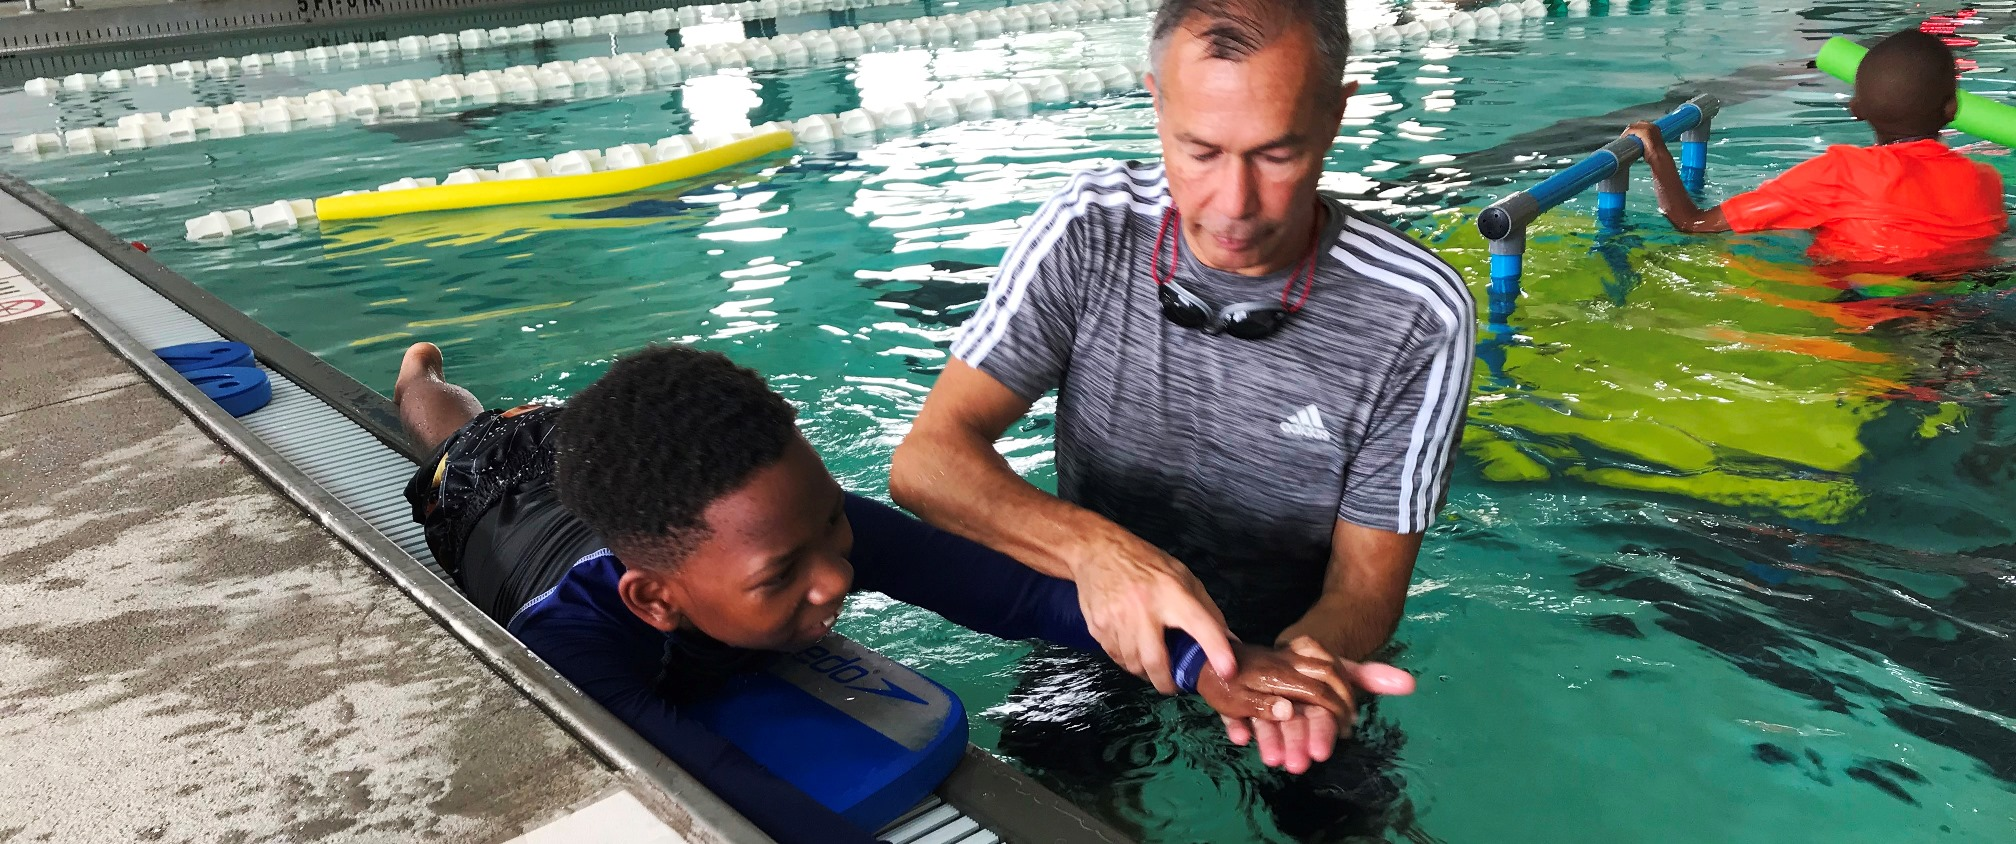 instructor showing child how to swim